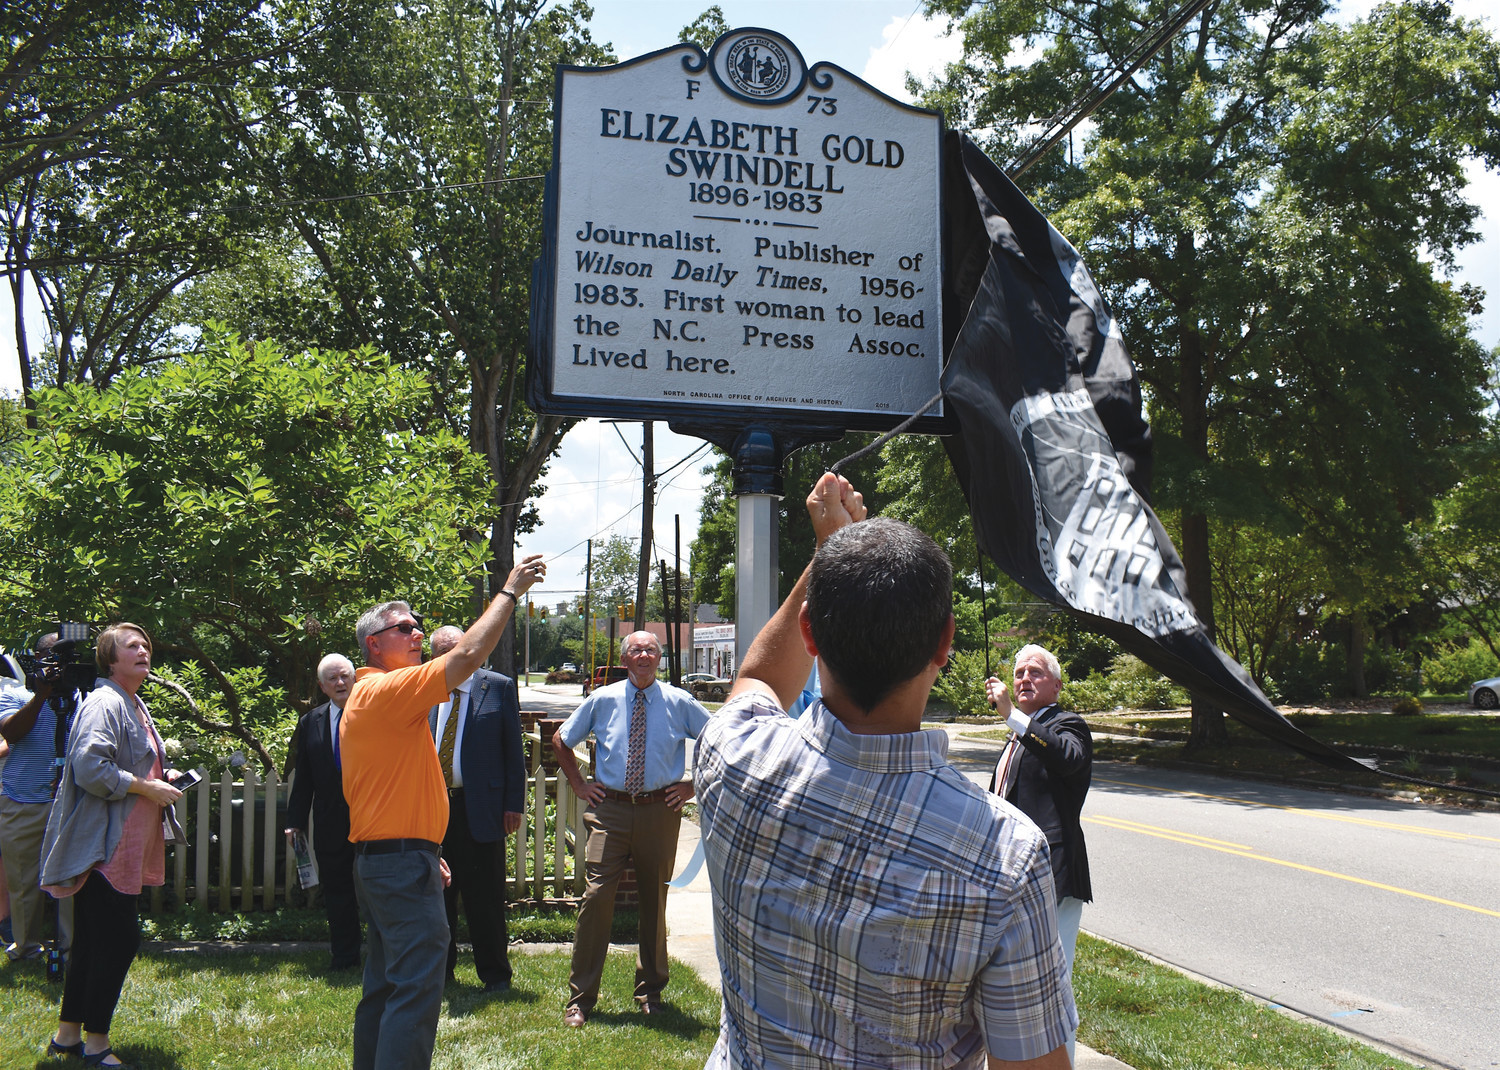 Times president and publisher Keven Zepezauer, left, and CEO and chairman Morgan Dickerman unveil a state historical marker honoring Elizabeth Gold Swindell on Saturday. Swindell earned statewide and national recognition for her work while serving as The Wilson Times' owner and publisher. (Photo by Corey Friedman/The Wilson Times)